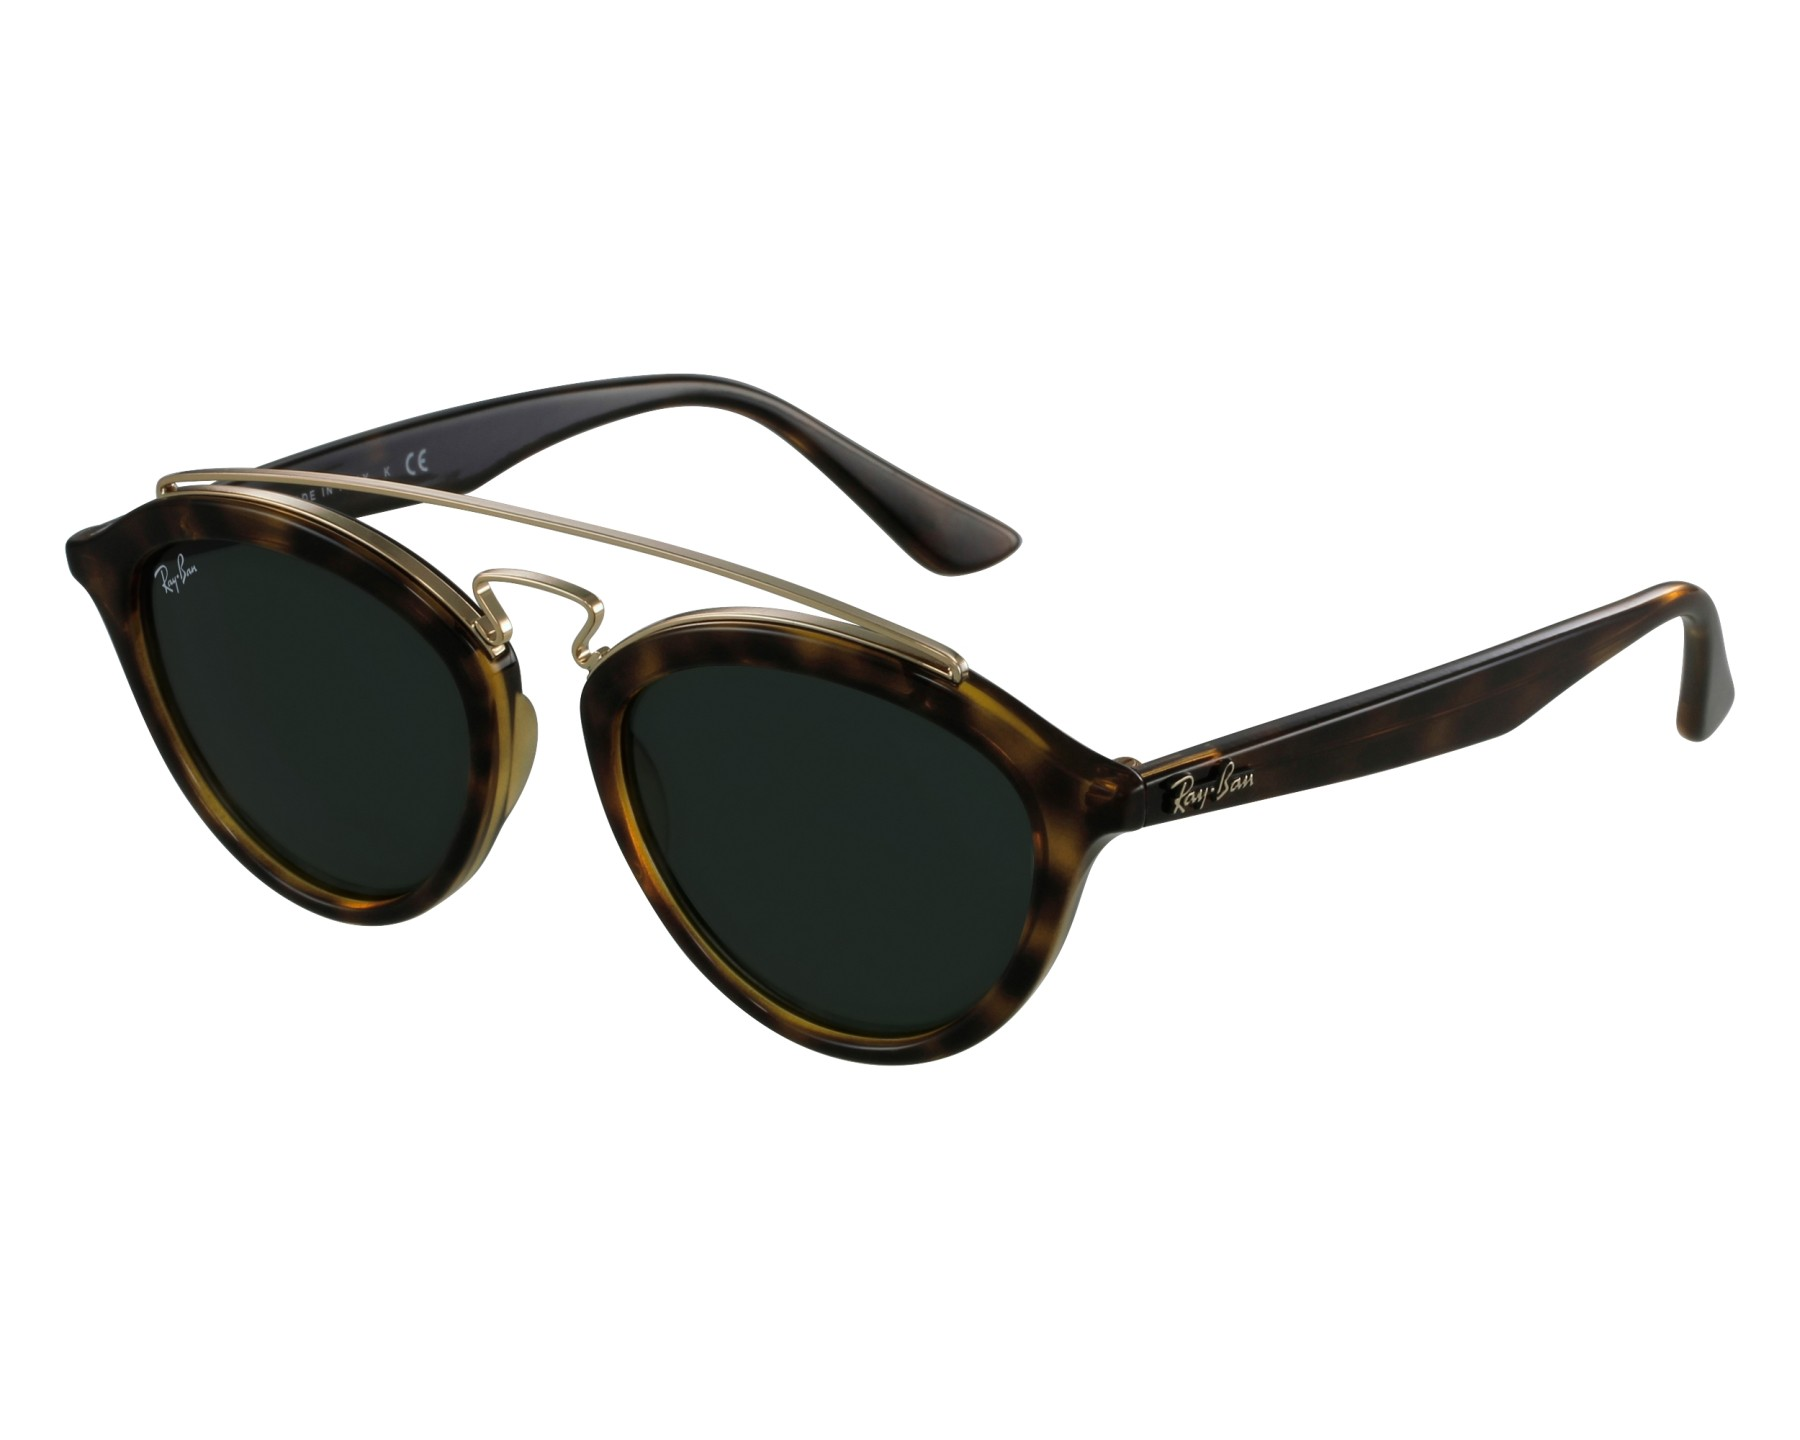 a8c8ac4f13 Sunglasses Ray-Ban RB-4257 710 71 53-19 Havana Gold front